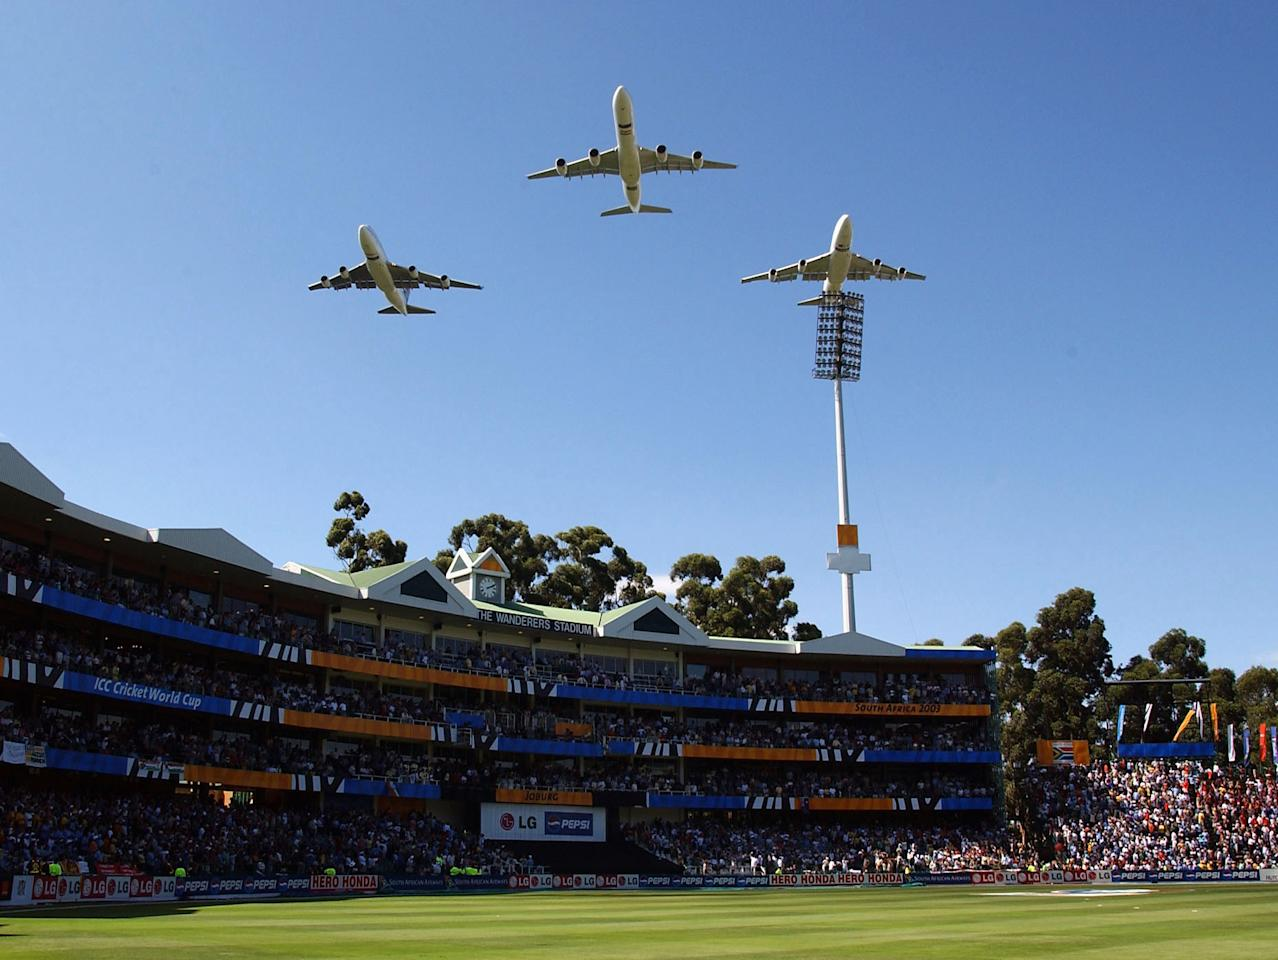 JOHANNESBURG- MARCH 23:  South African jets fly over the stadium during the World Cup Final between Australia and India at The Wanderers Ground Johannesburg, March 23, 2003. (Photo by Stu Forster/Getty Images).